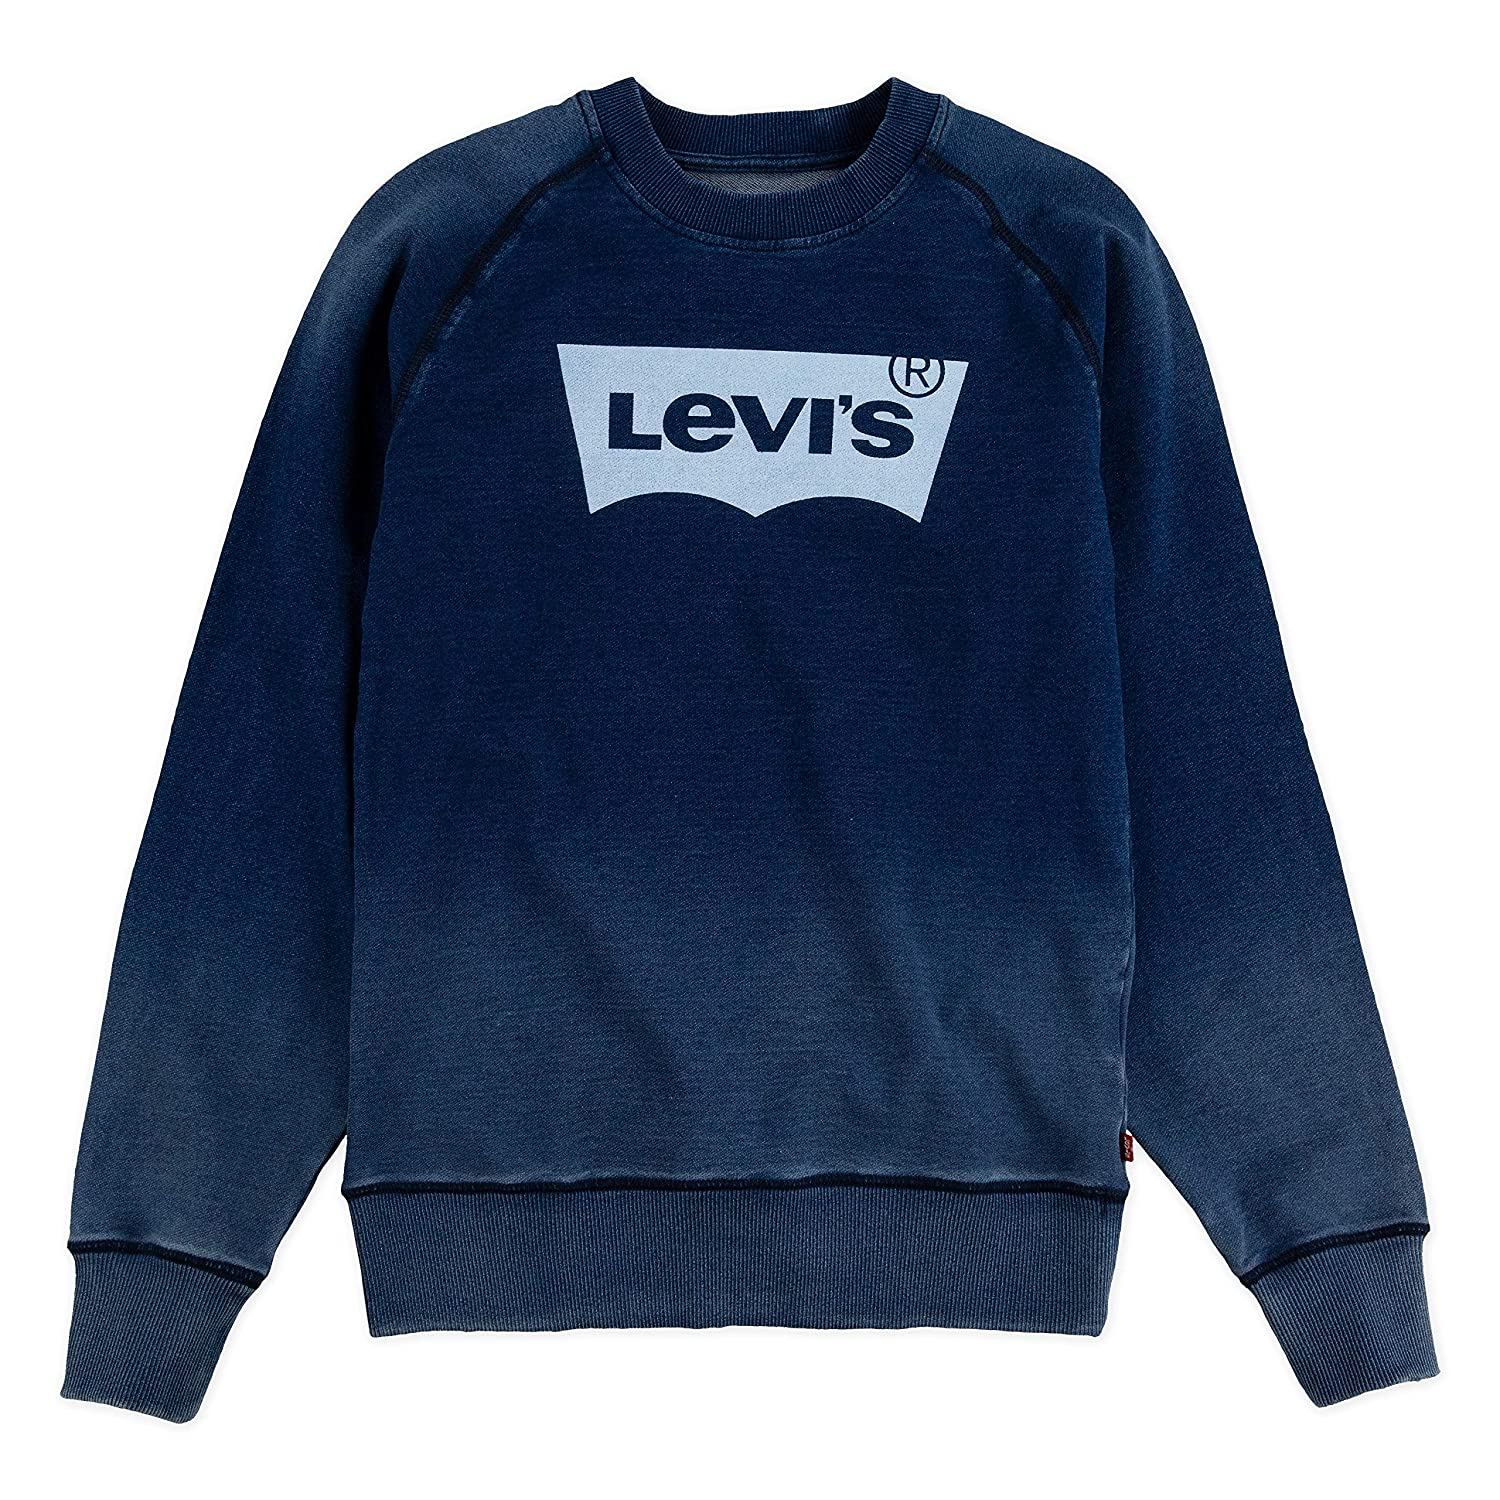 02493718e7 Amazon.com: Levi's Boys' Crewneck Sweatshirt: Clothing